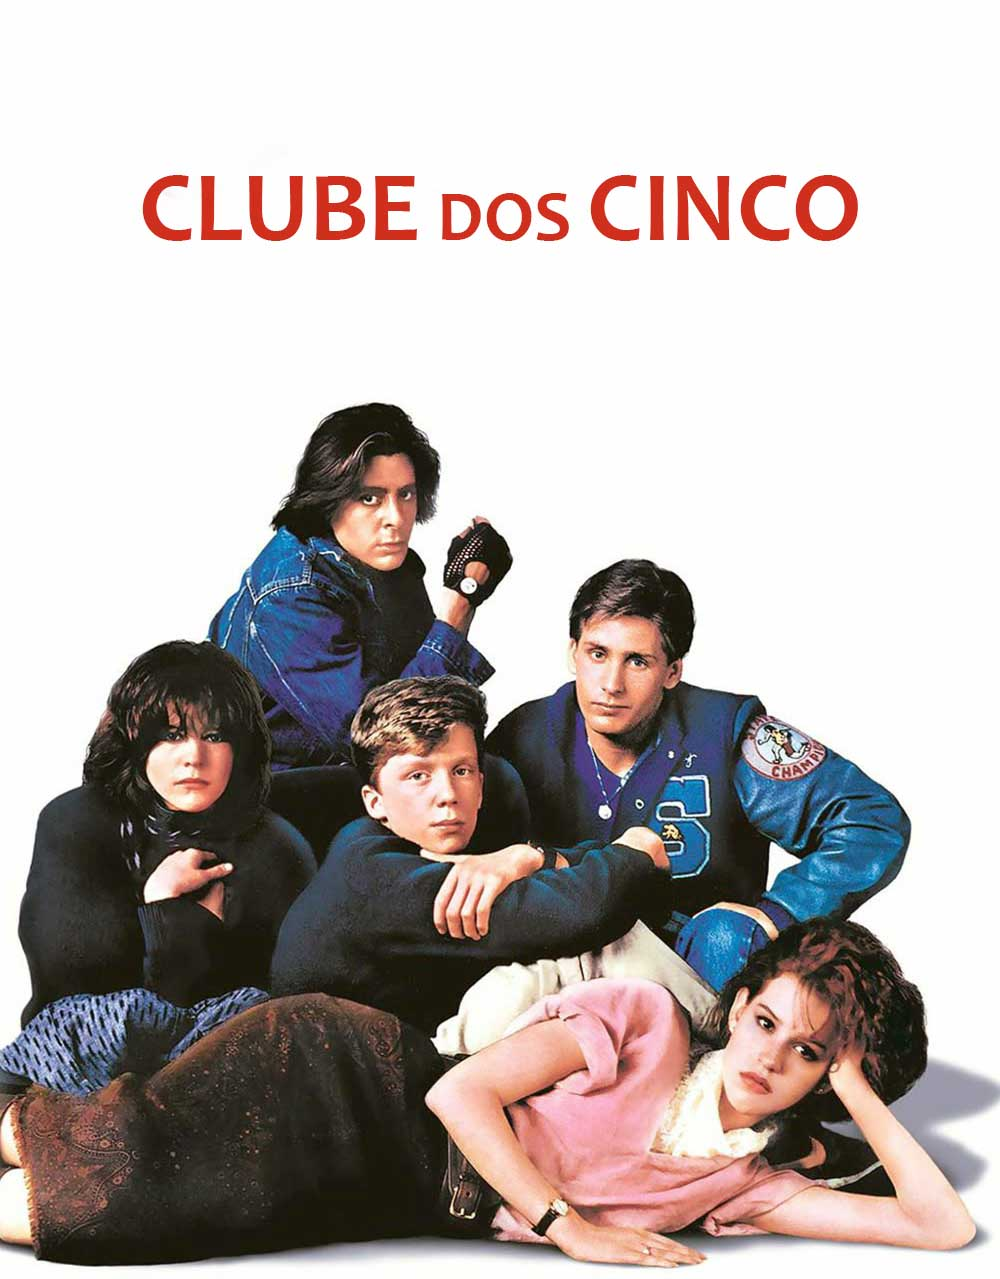 Clube dos Cinco Torrent - Blu-ray Rip 720p e 1080p Dual Áudio (1985)